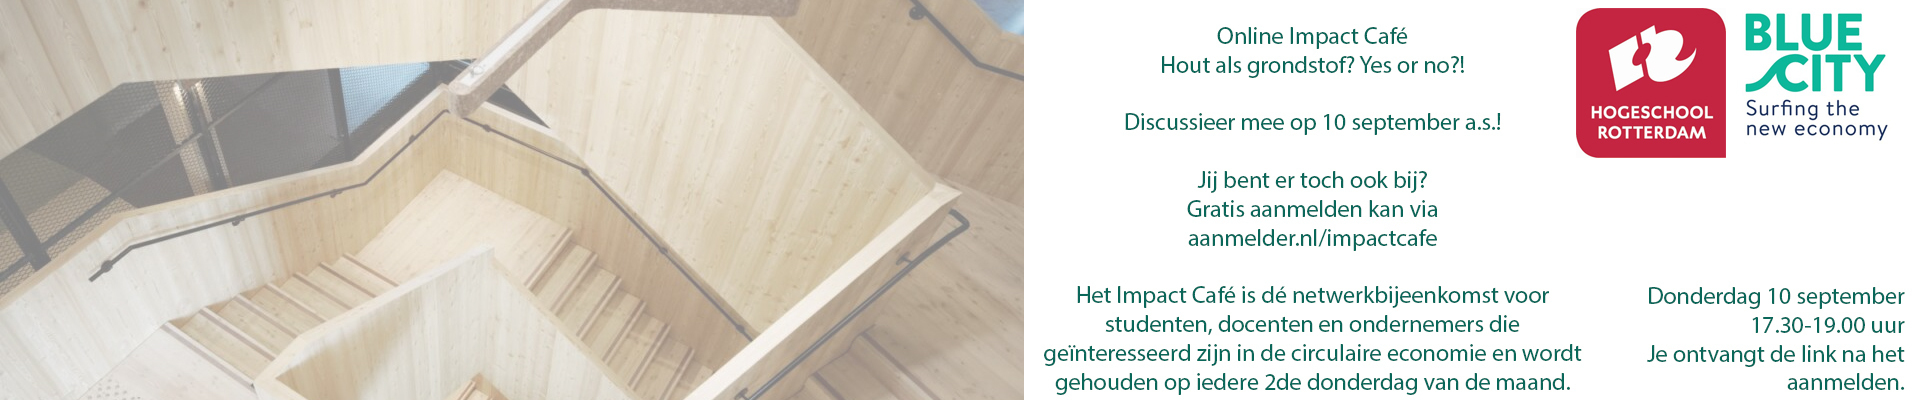 Impact Café 10 september: Hout als grondstof? Yes or no?!